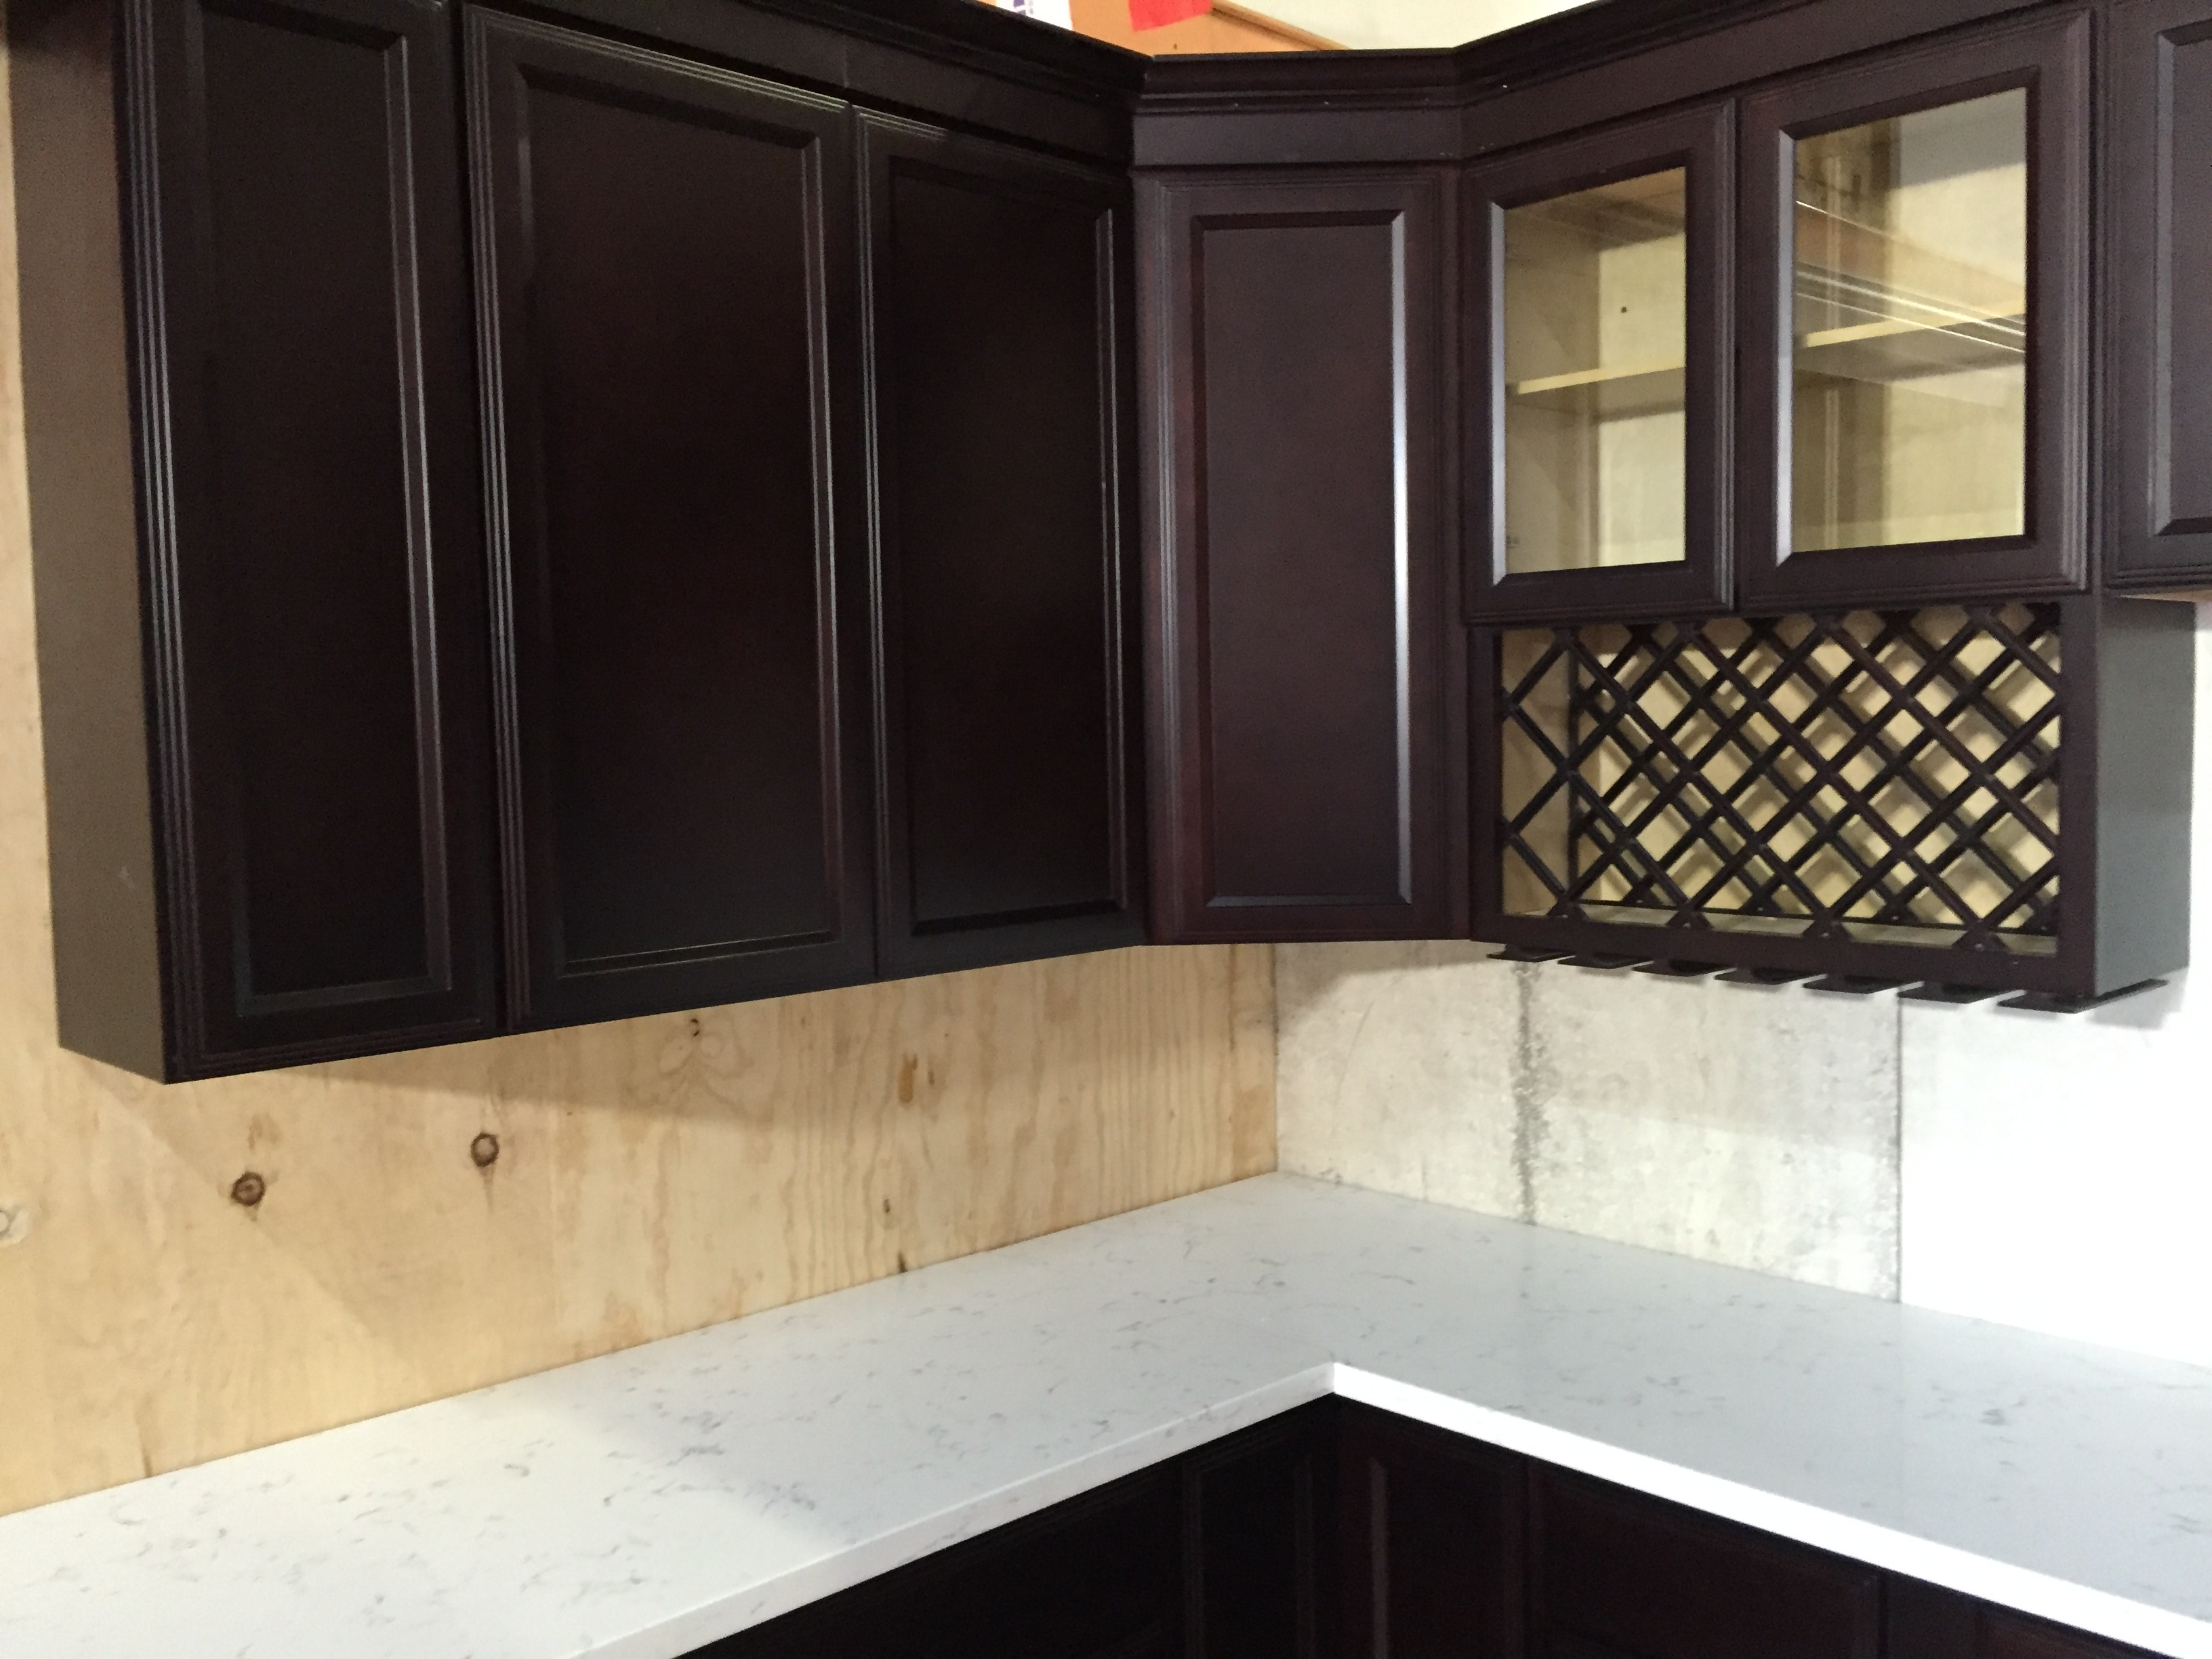 Espresso Colored recessed Panel Kitchen Cabinets